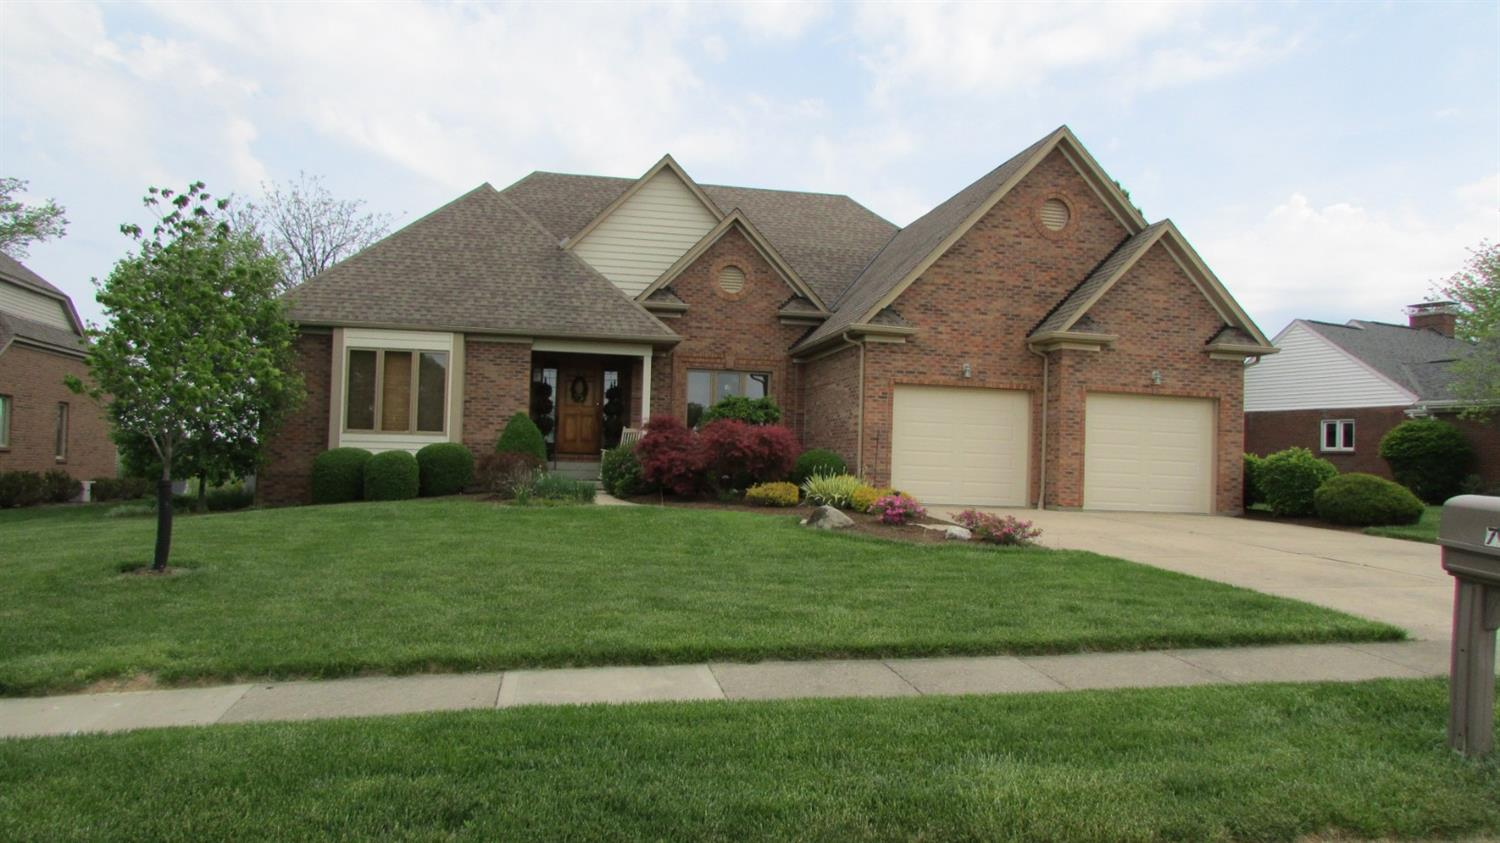 7470 Pickway Dr Miami Twp. (West), OH